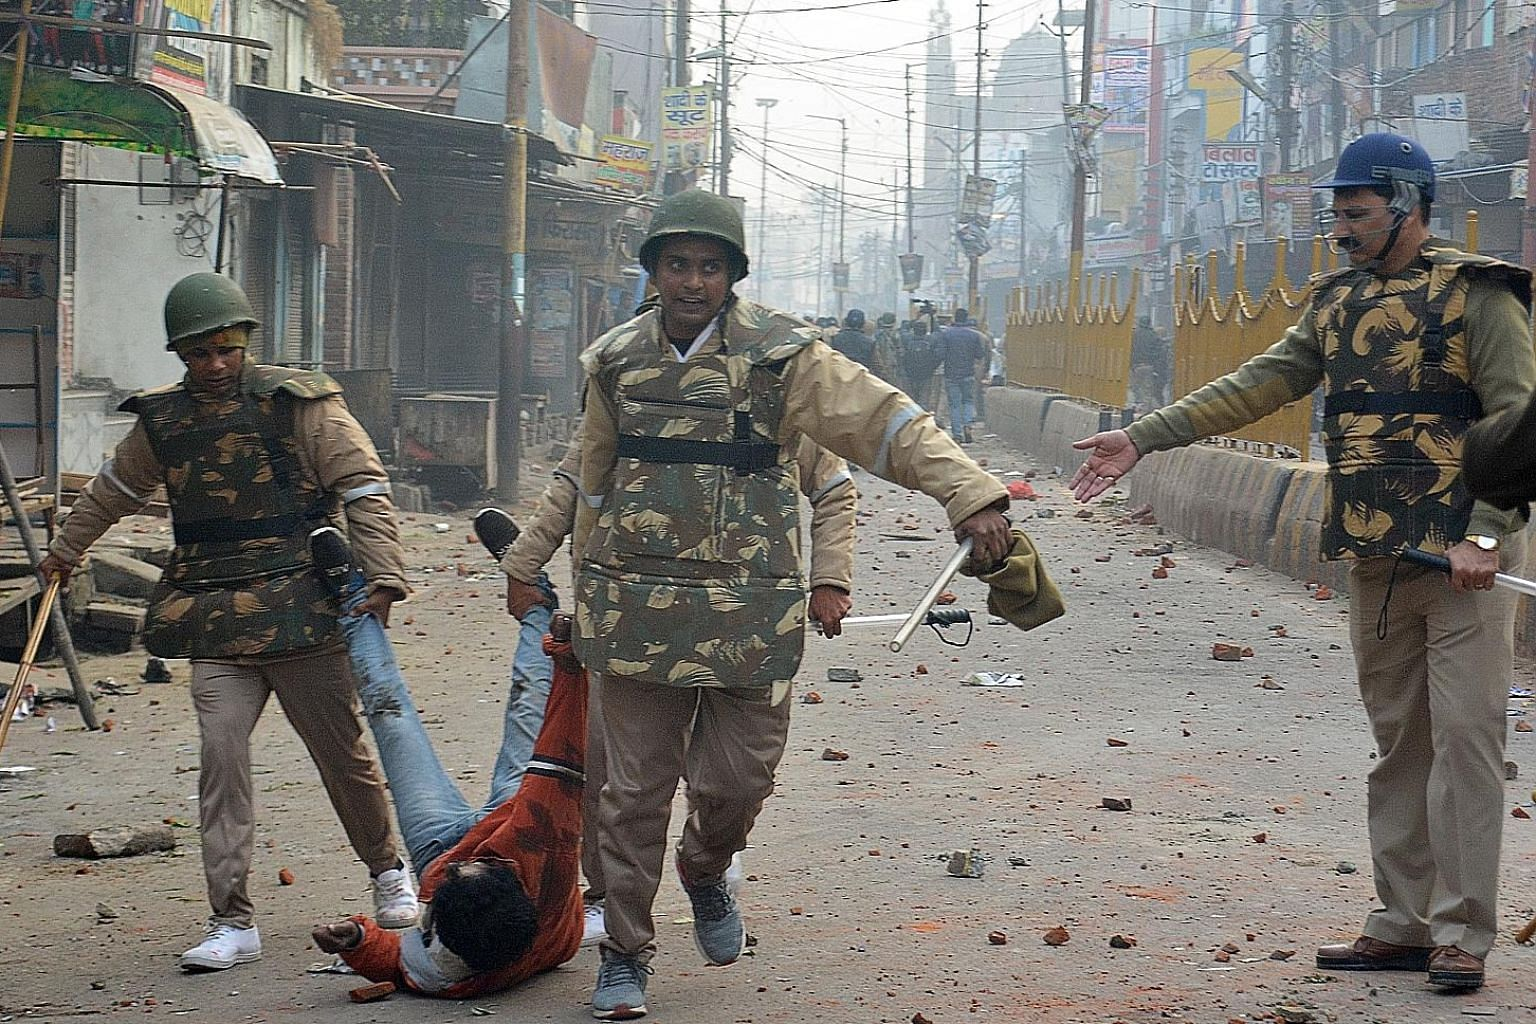 Security personnel detaining a protester during demonstrations in Meerut against India's Citizenship Amendment Act on Dec 20. Five men were shot dead in what locals call police excesses.